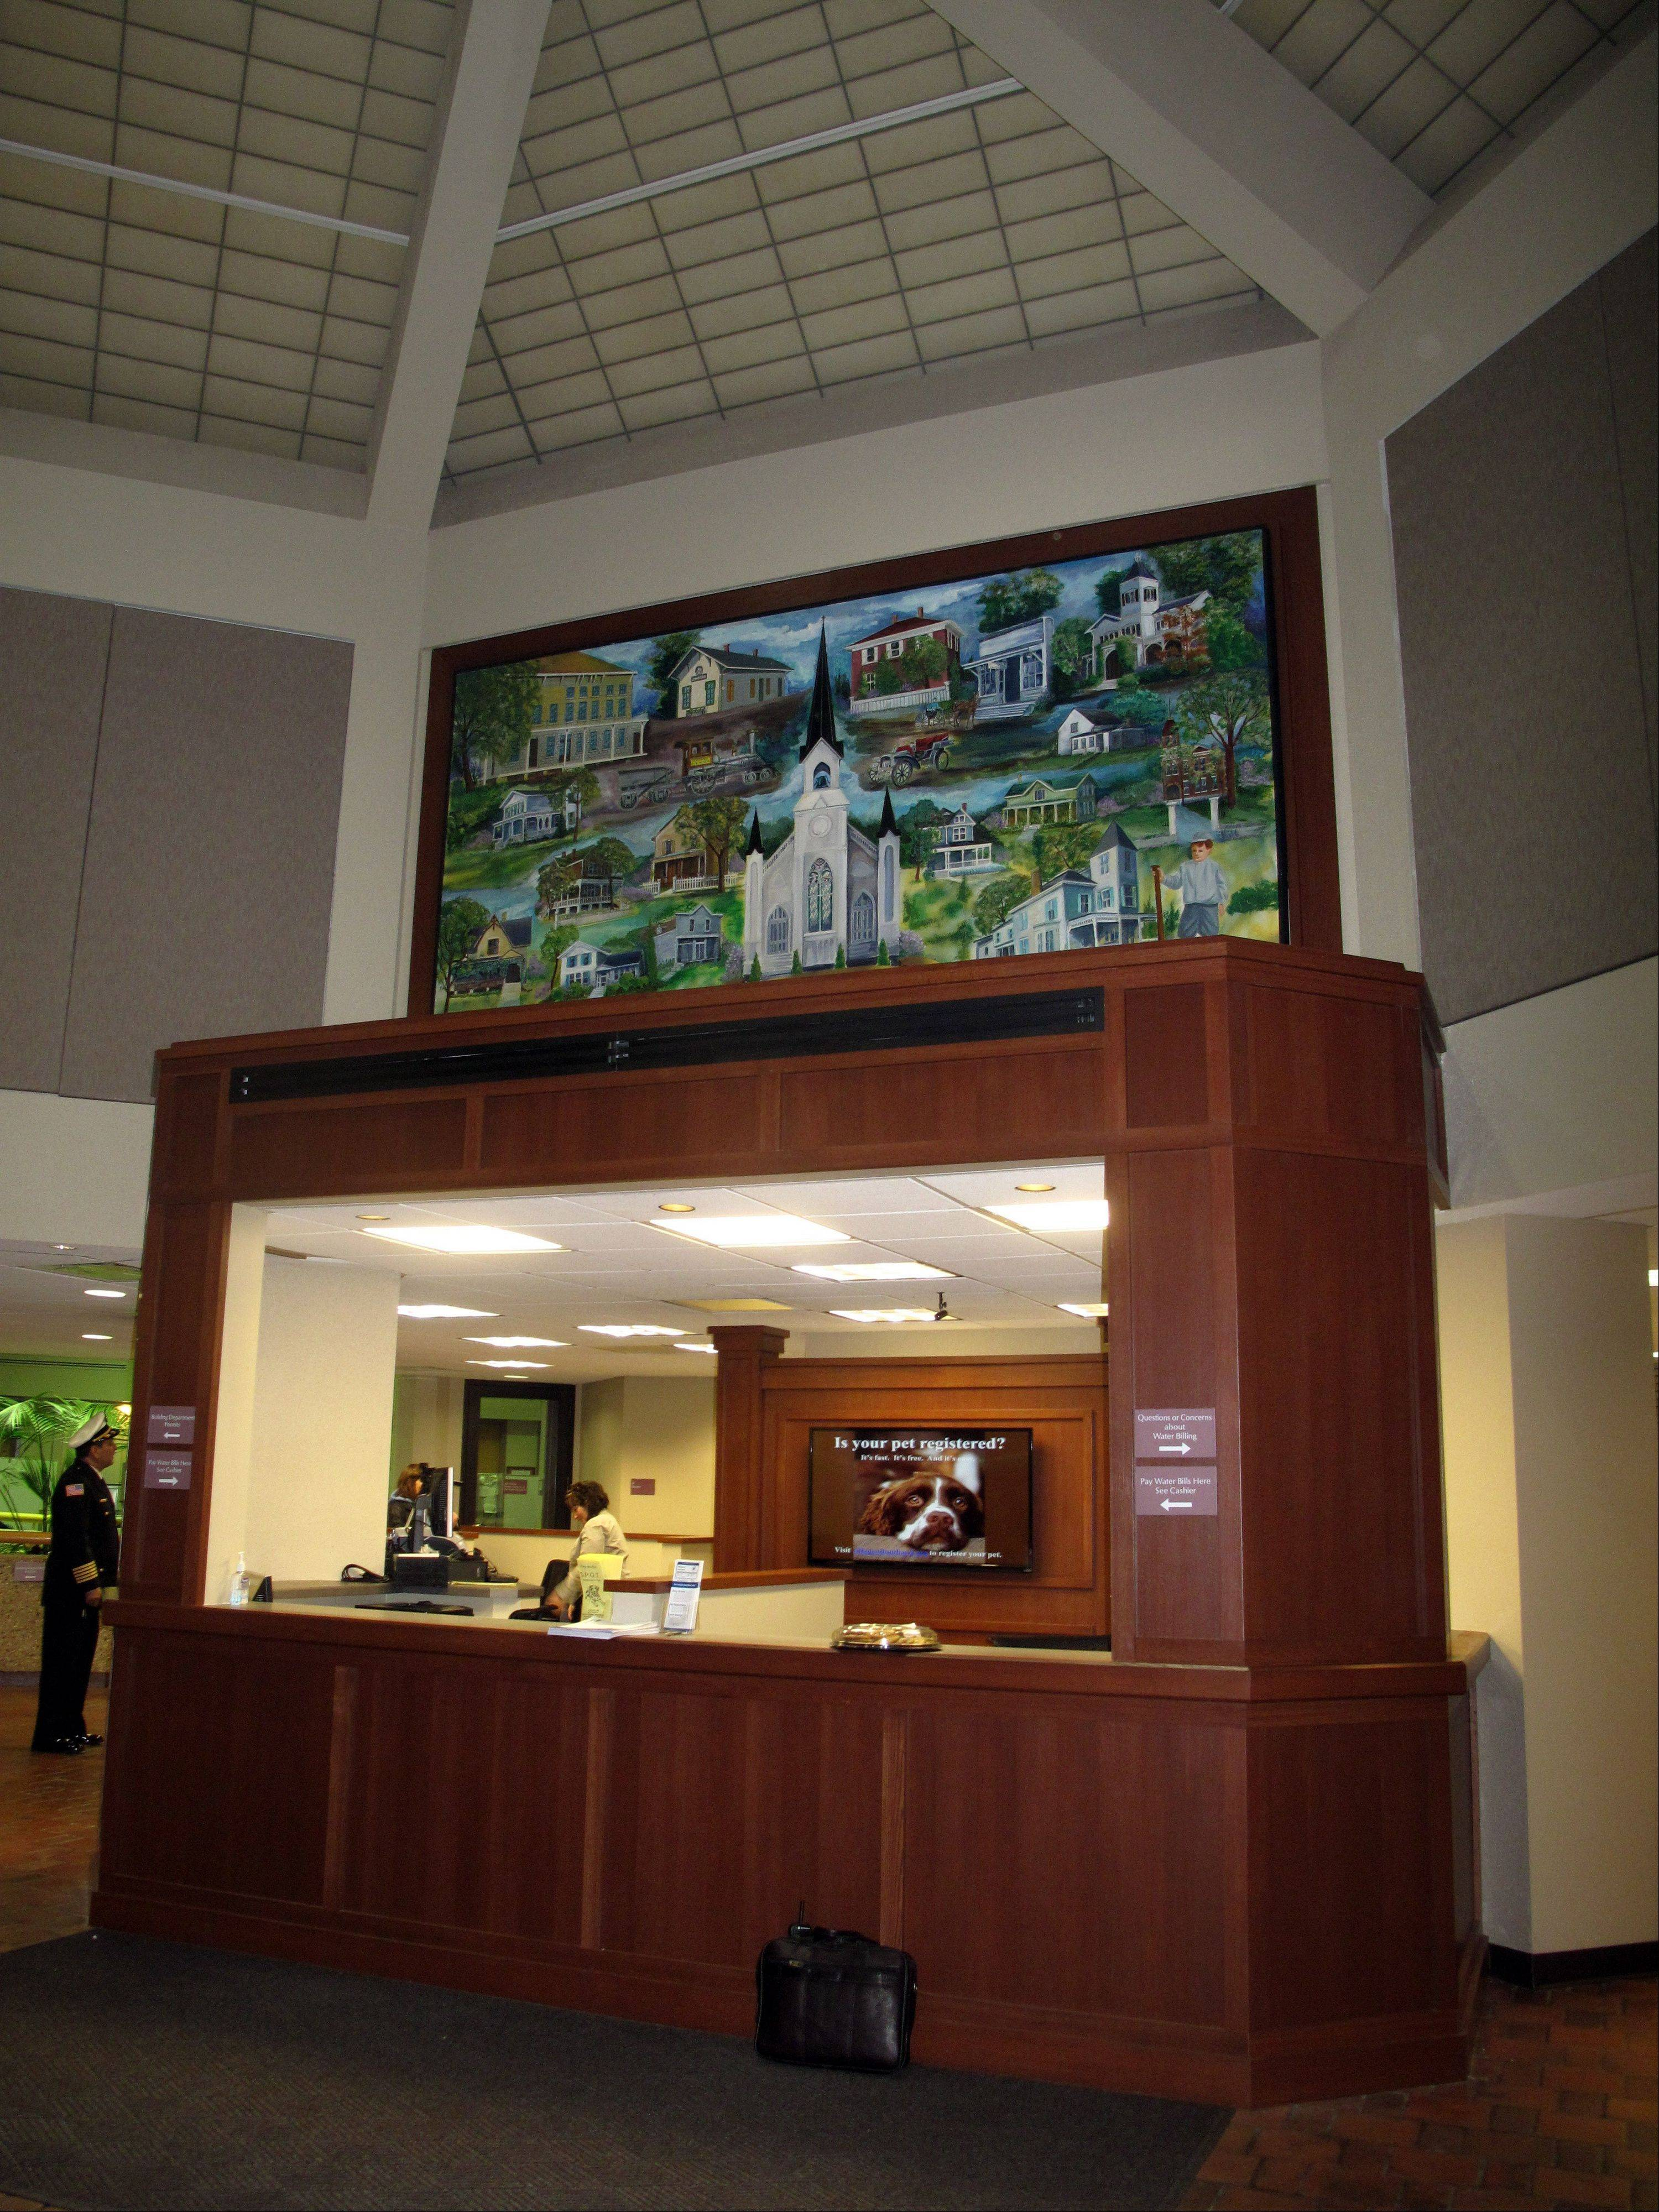 A lower counter in a cherry wood finish, two new work stations and a LED screen displaying village events were added to the front desk at Lombard village hall during a recently completed $65,000 renovation. The painting above the desk also received a facelift.